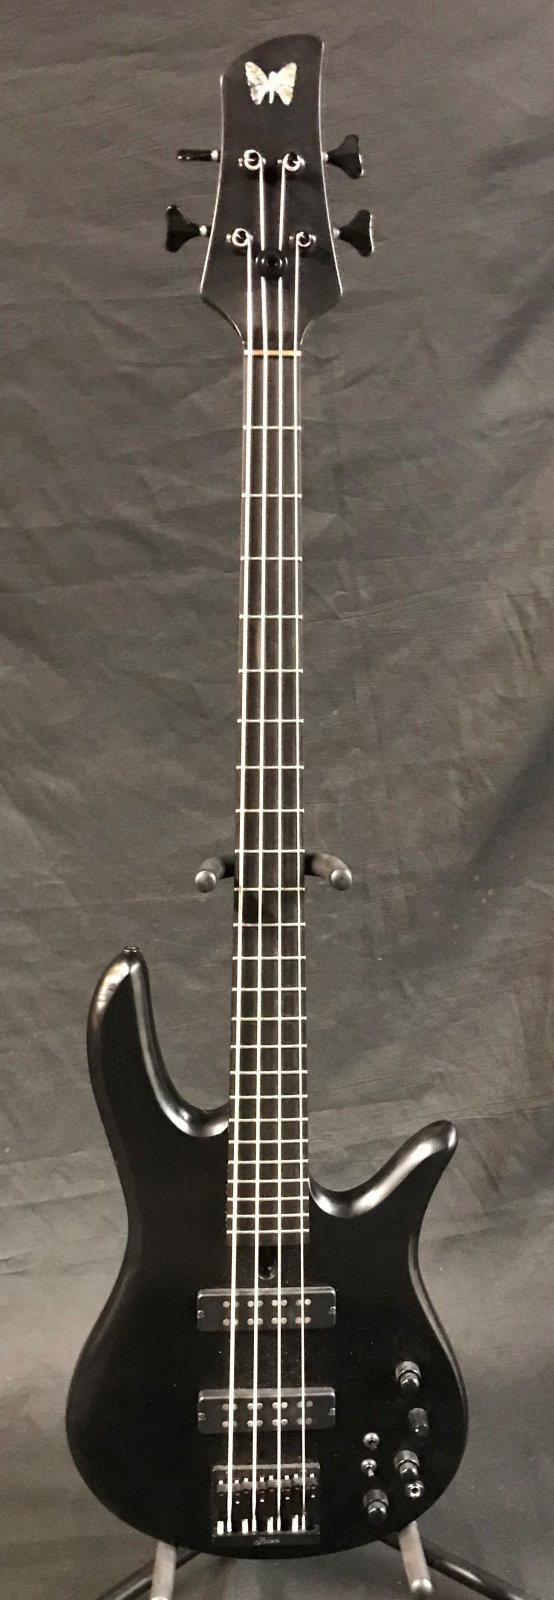 Used Fodera Monarch Standard Special